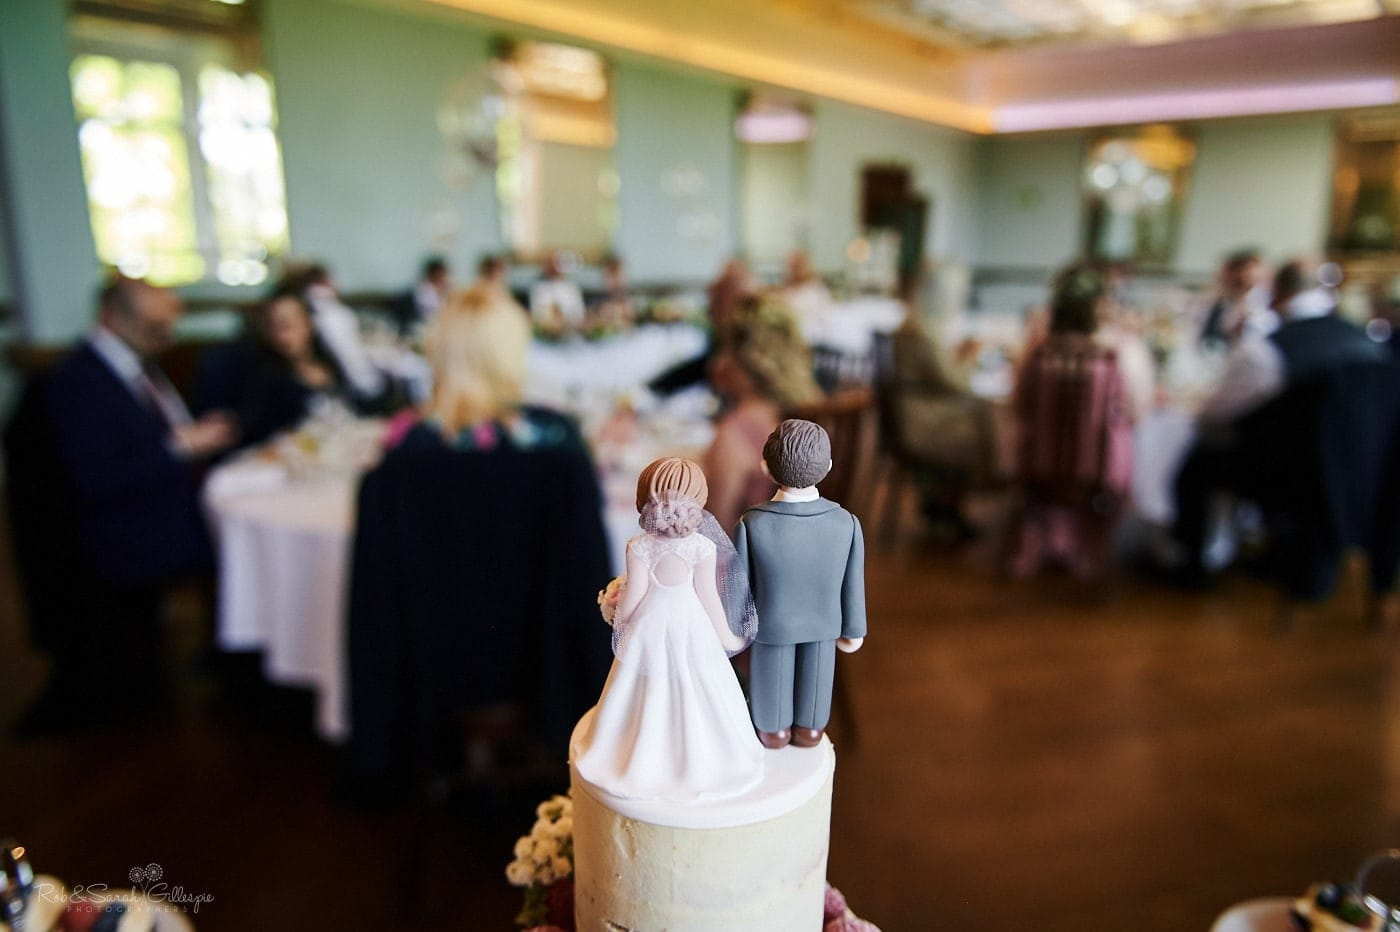 Wedding cake topper with wedding meal taking place in background